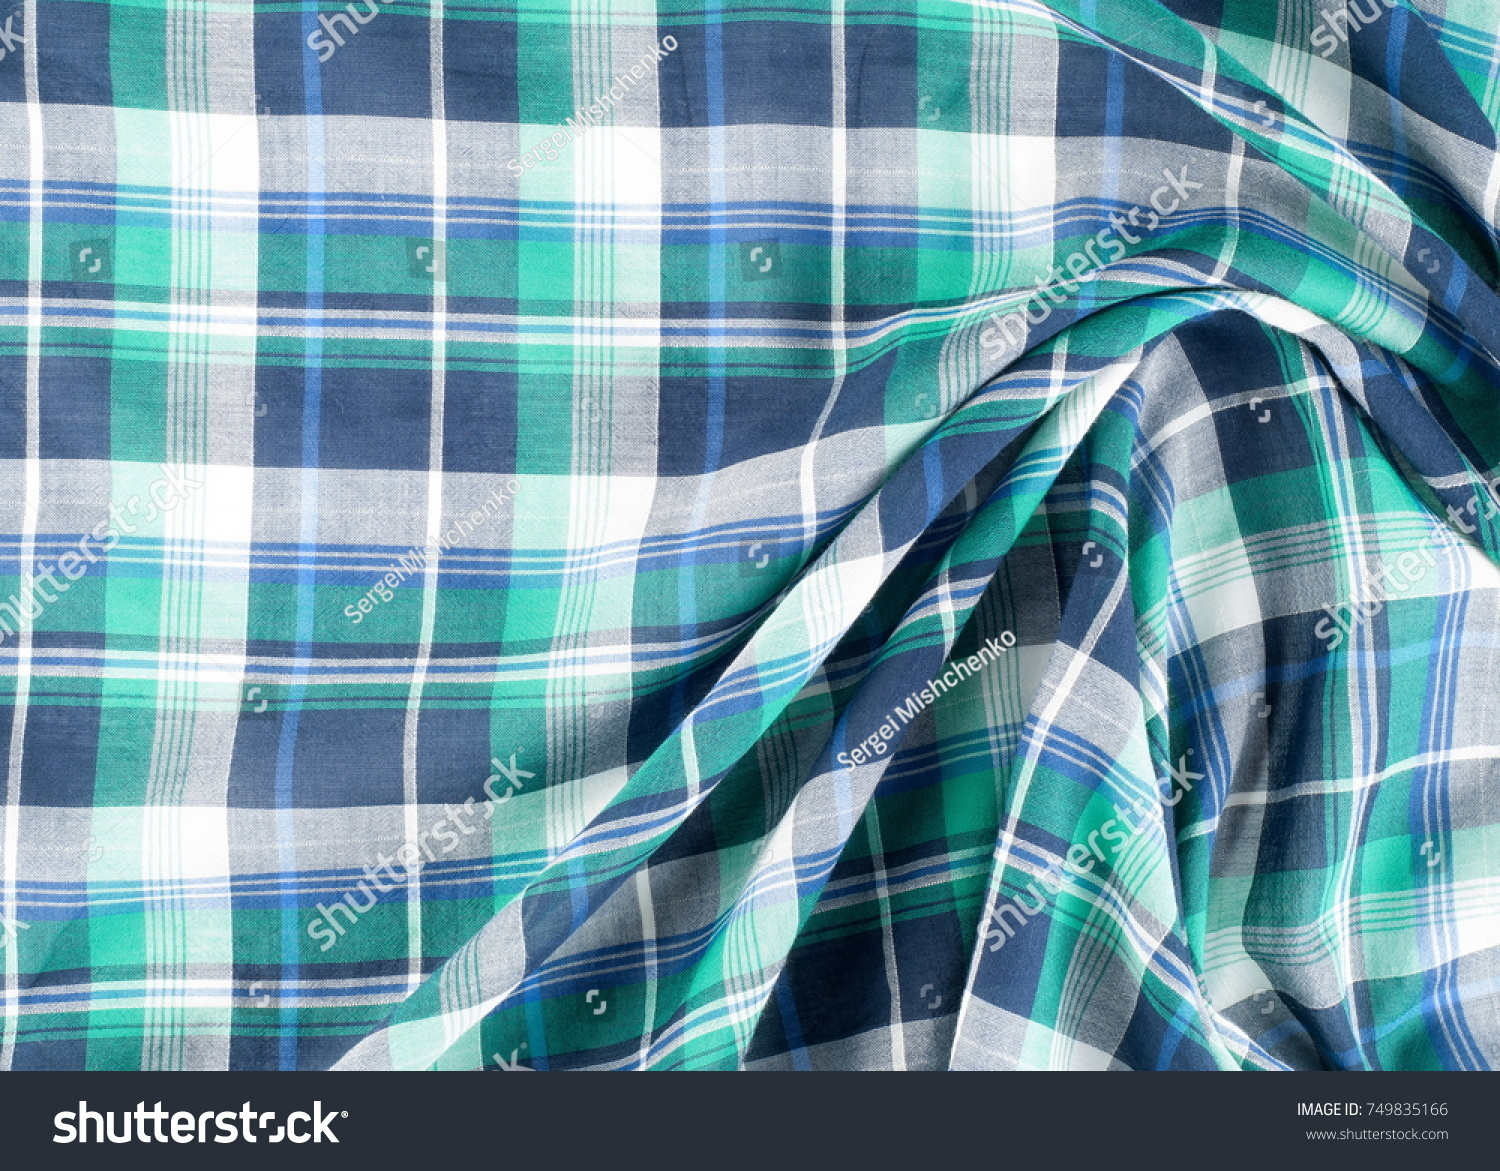 Christmas Coloring Fabric With Box Tartan Cloth Plaid Stock Photo Edit Now